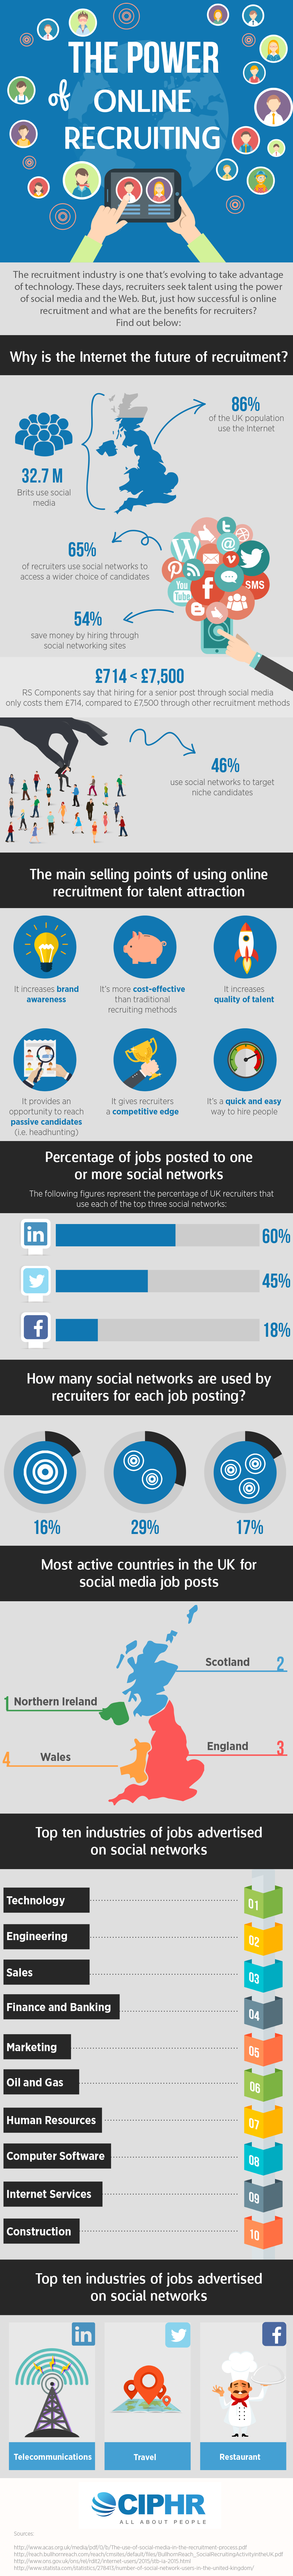 The Power Of Online Recruiting